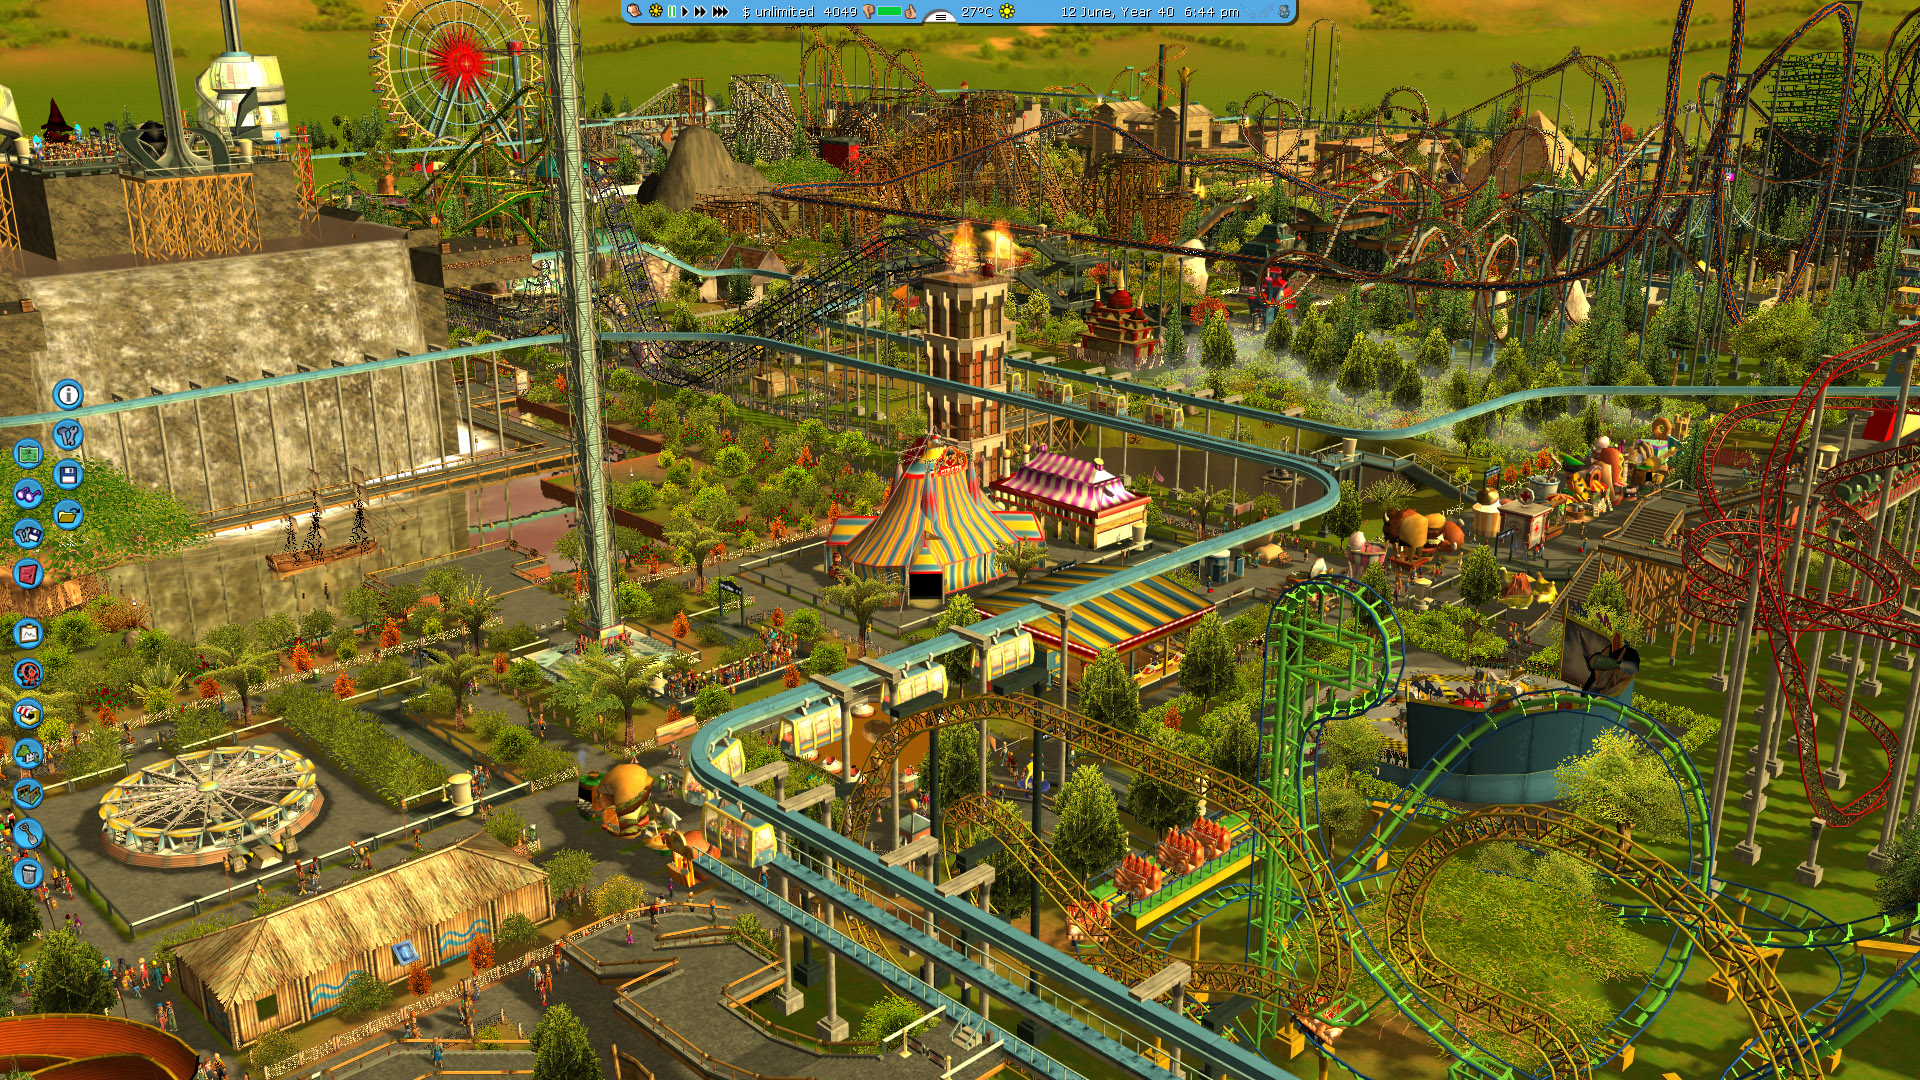 Rollercoaster Download Free